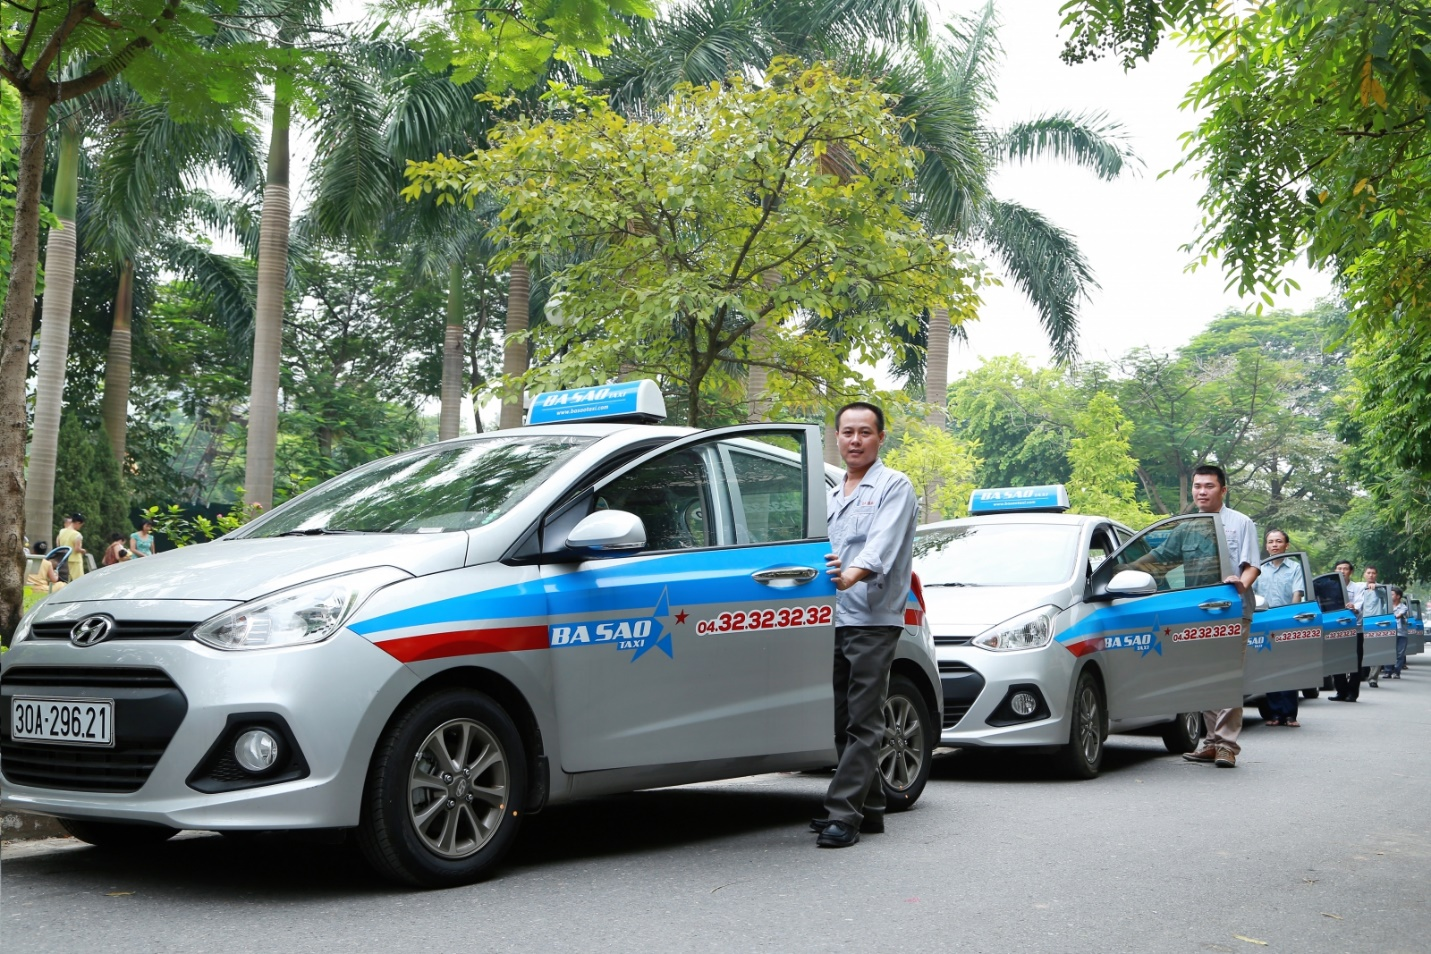 If you are in Thanh Xuan area, you should choose Ba Sao taxi